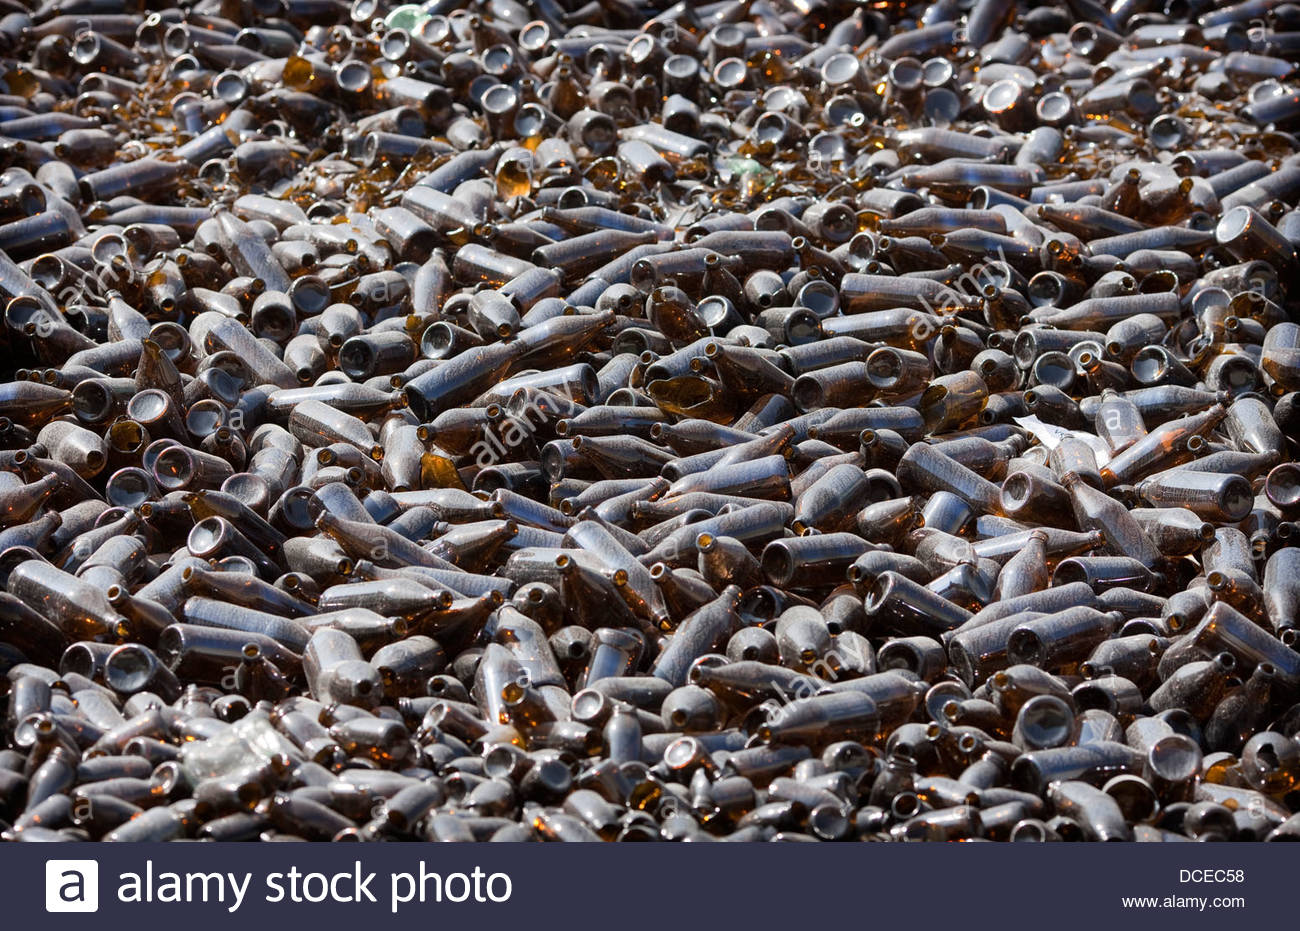 Beer bottles at a scrap yard, Neuburg, Bavaria, Germany - Stock Image